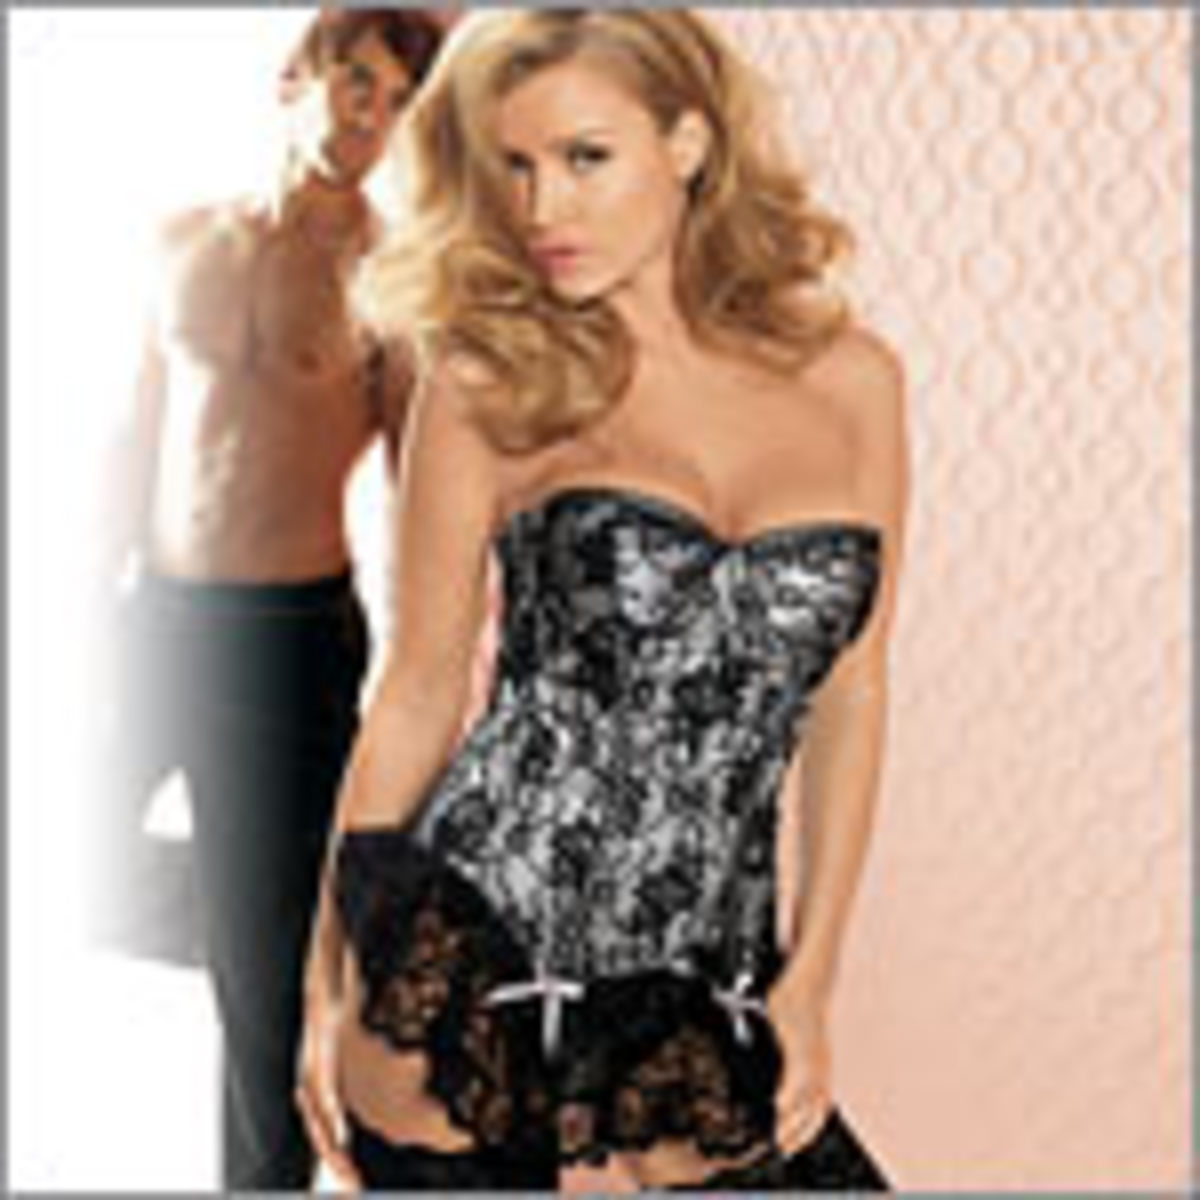 men-in-lingerie-the-secret-power-of-panties--skirts--and-makeup